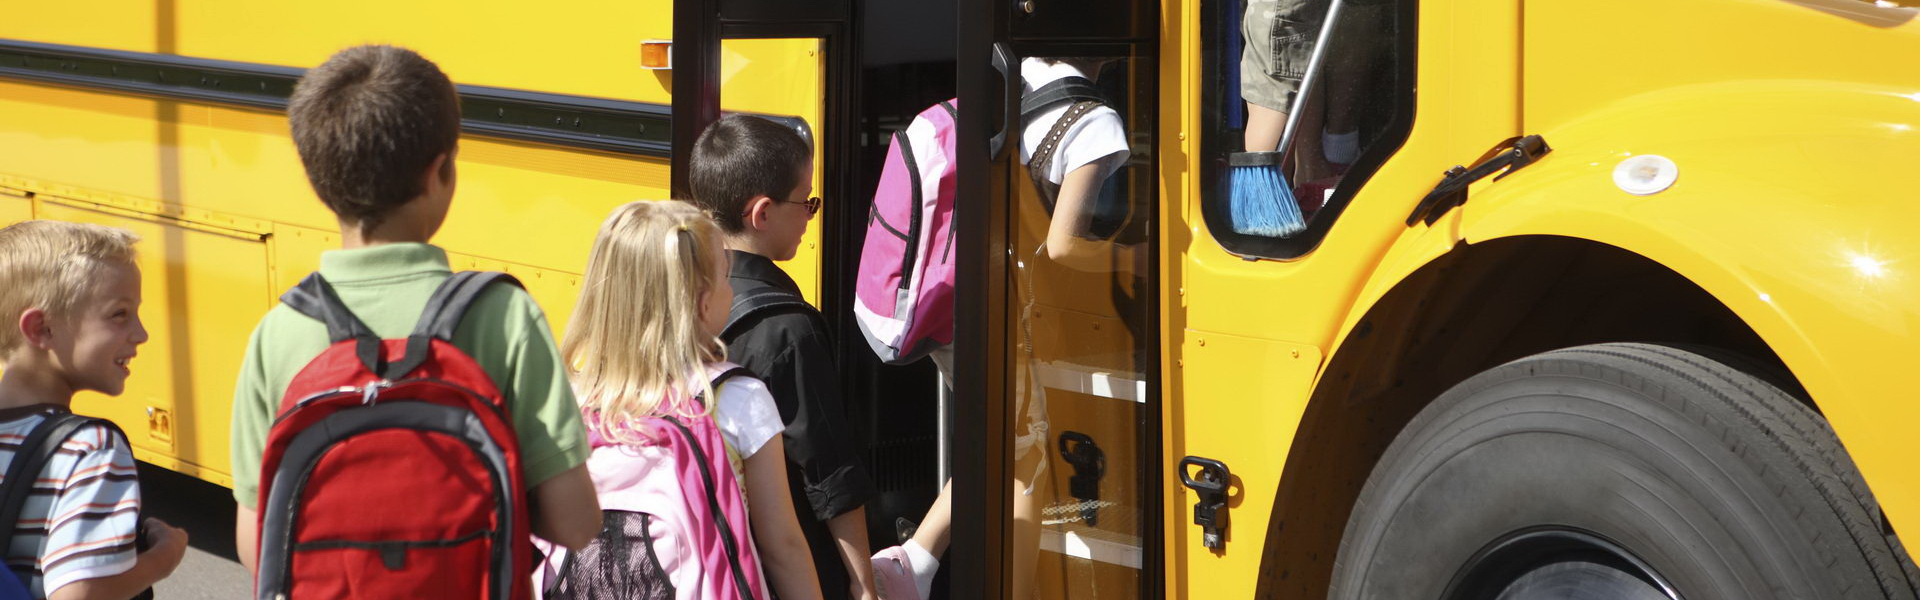 Day Care Centers, Schools, & School Buses